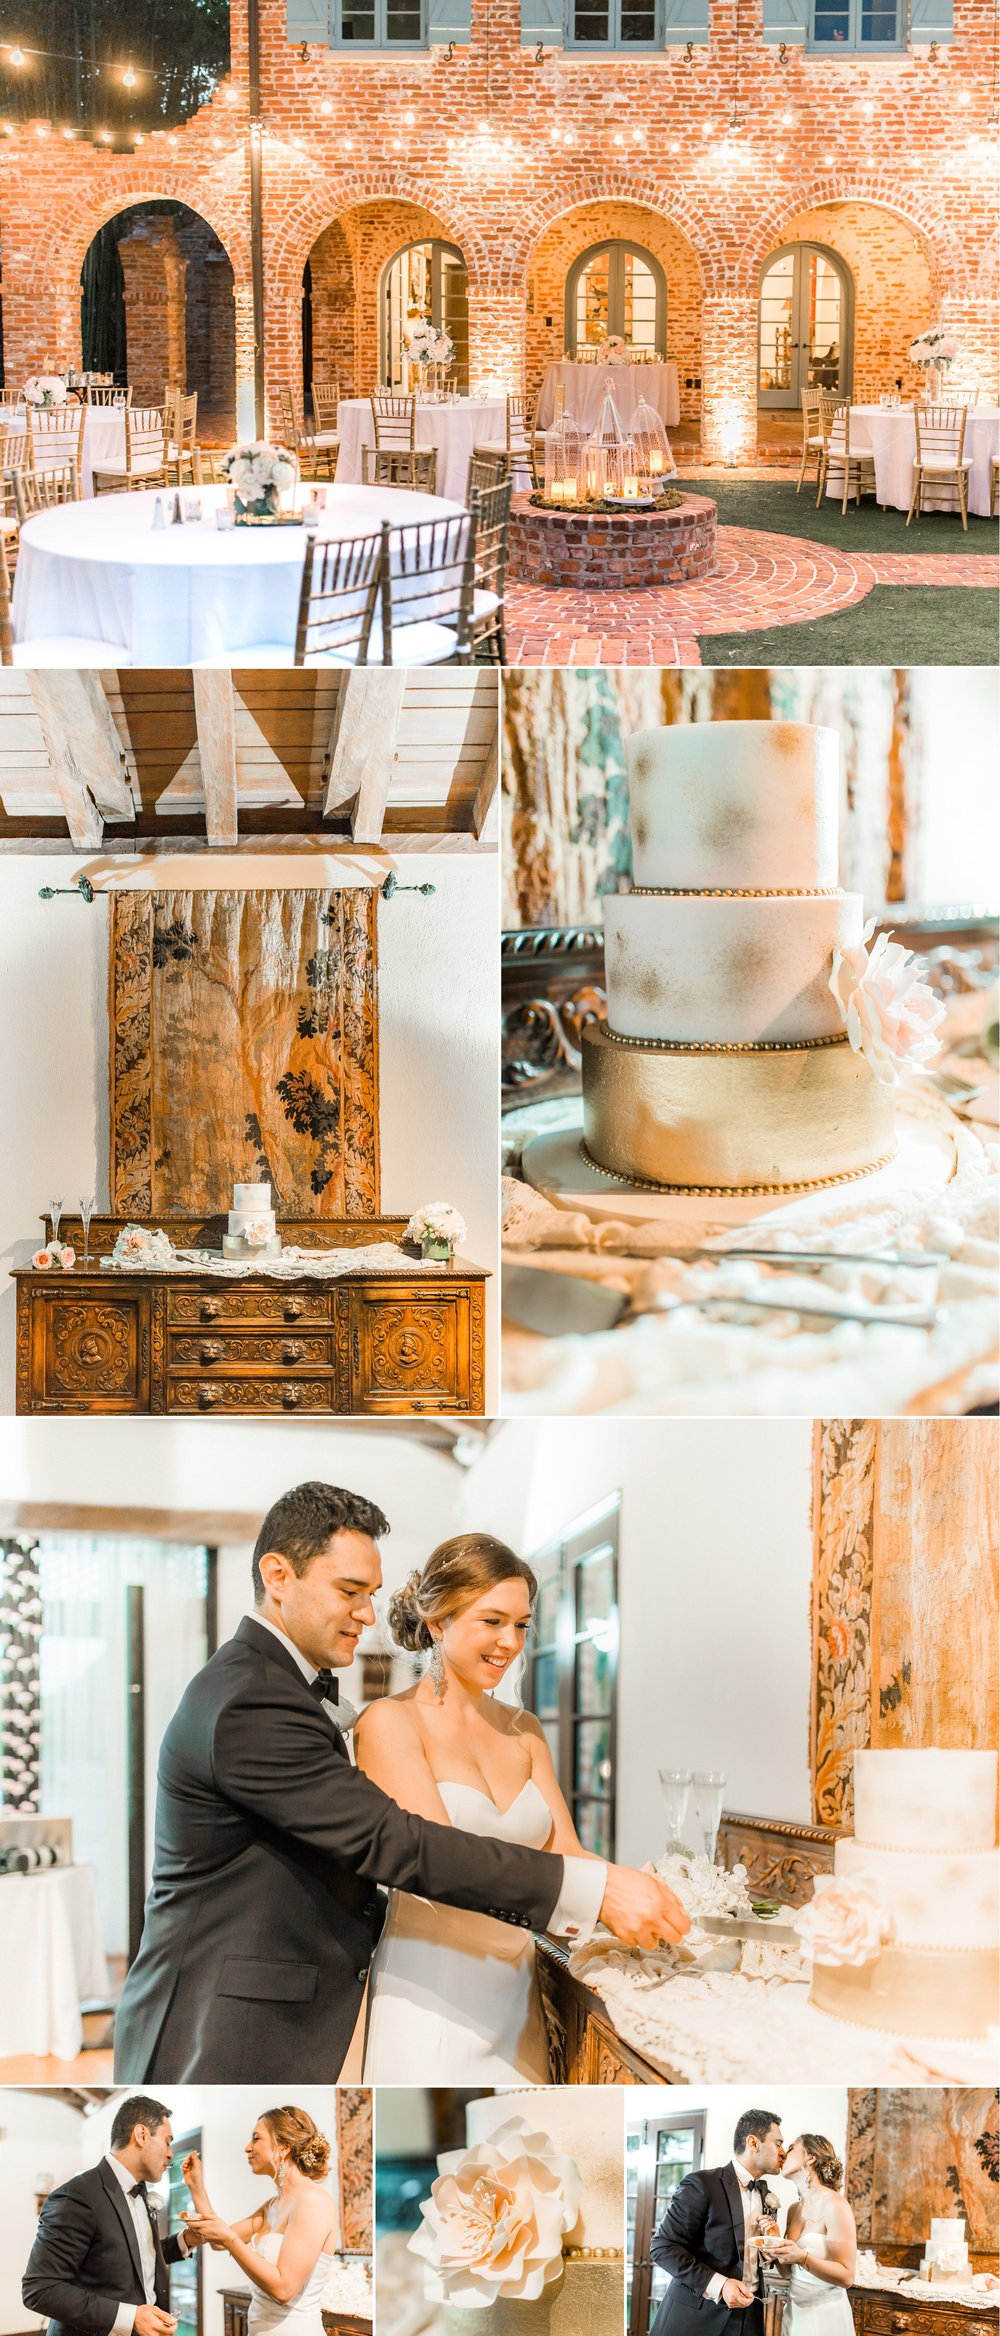 Boho Chic Blush Gold Wedding at Casa Feliz Winter Park -Andres + Elya 187.jpg